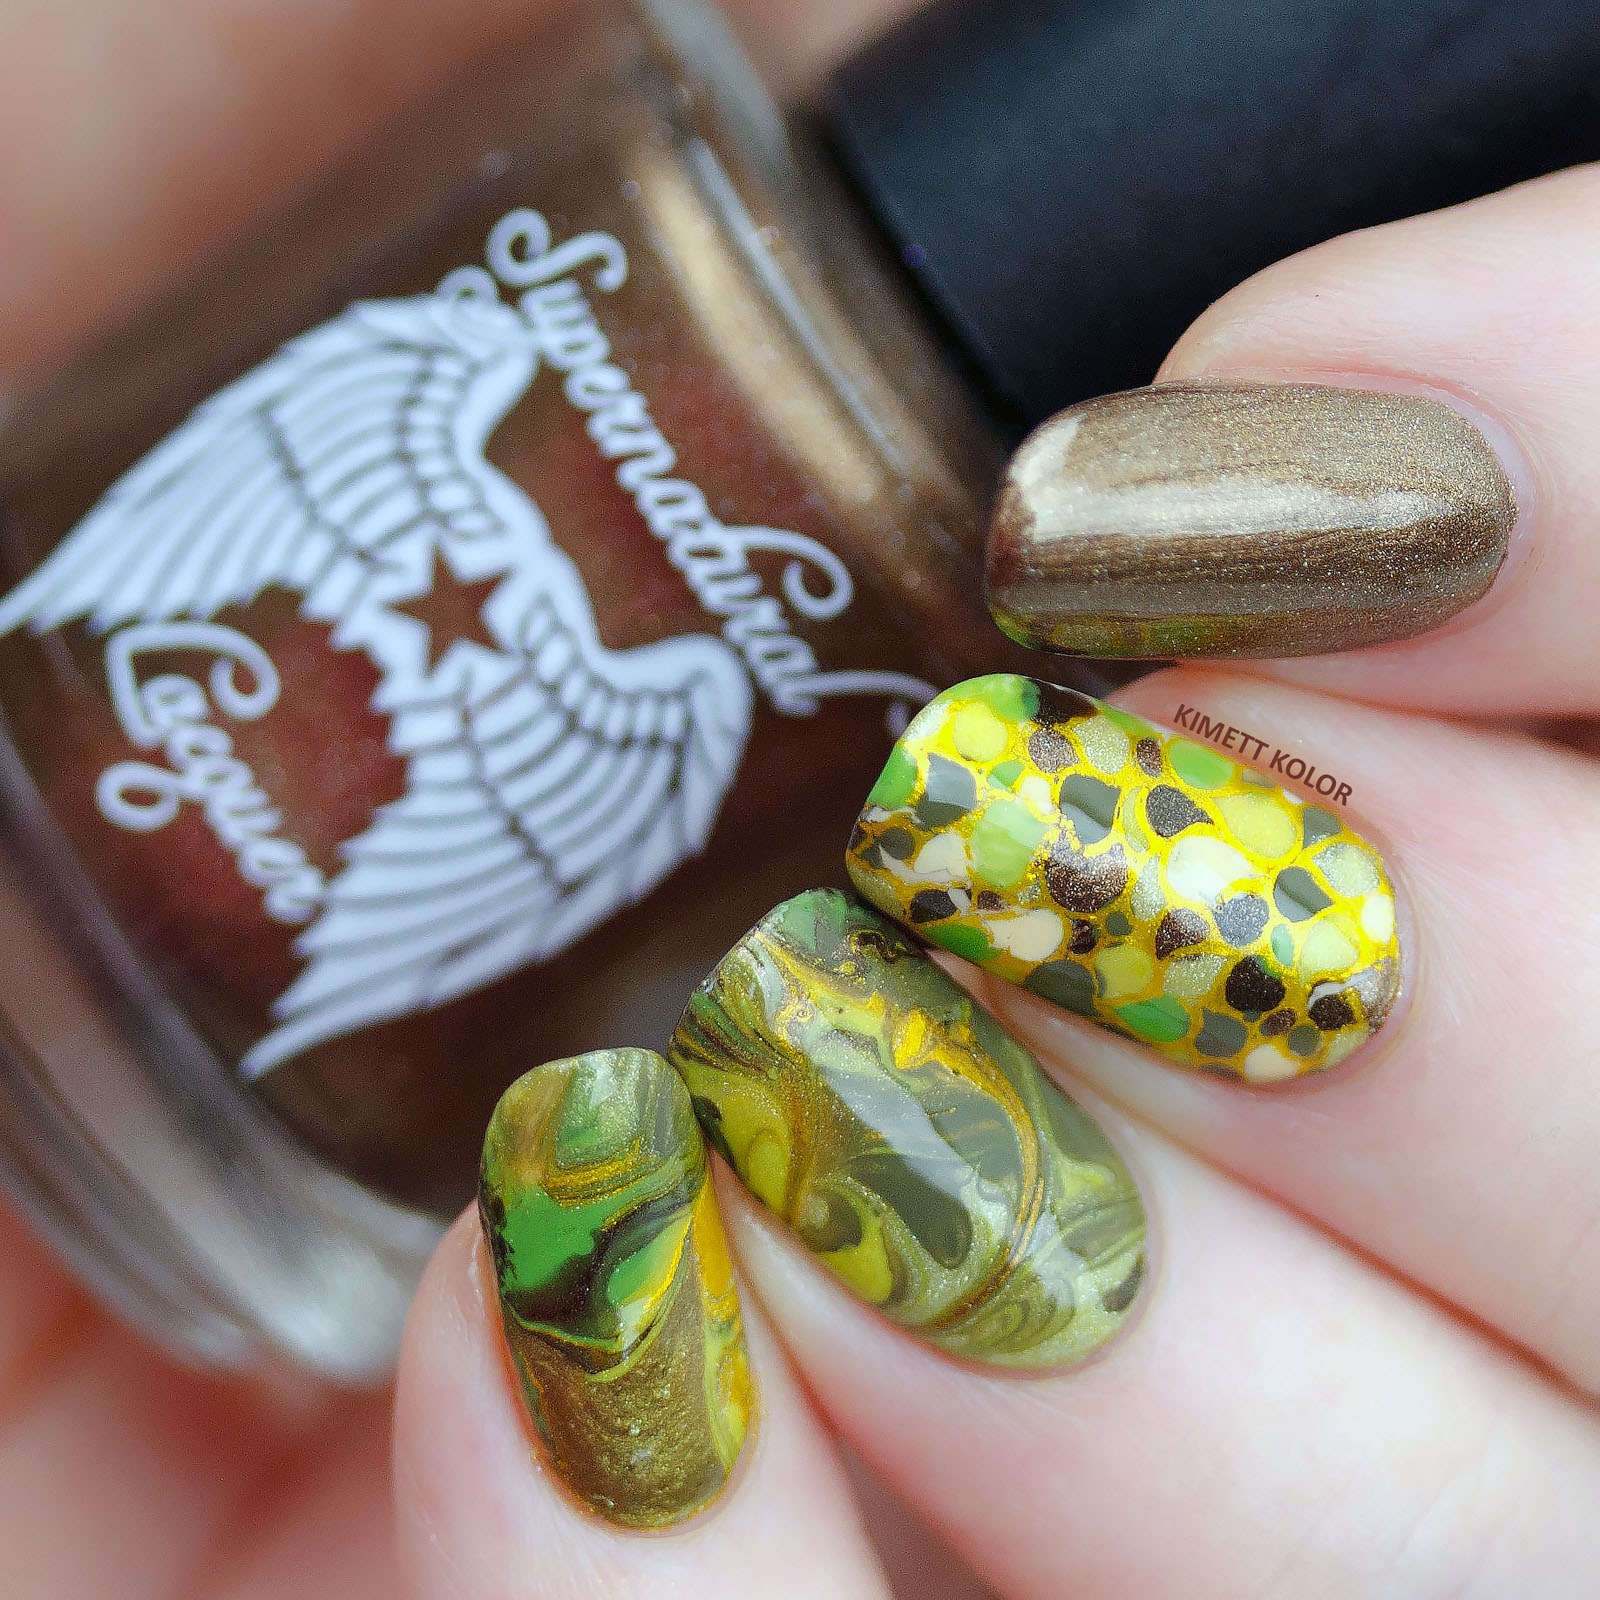 Kimett Kolor Nail Art with Supernatural Lacquer and more